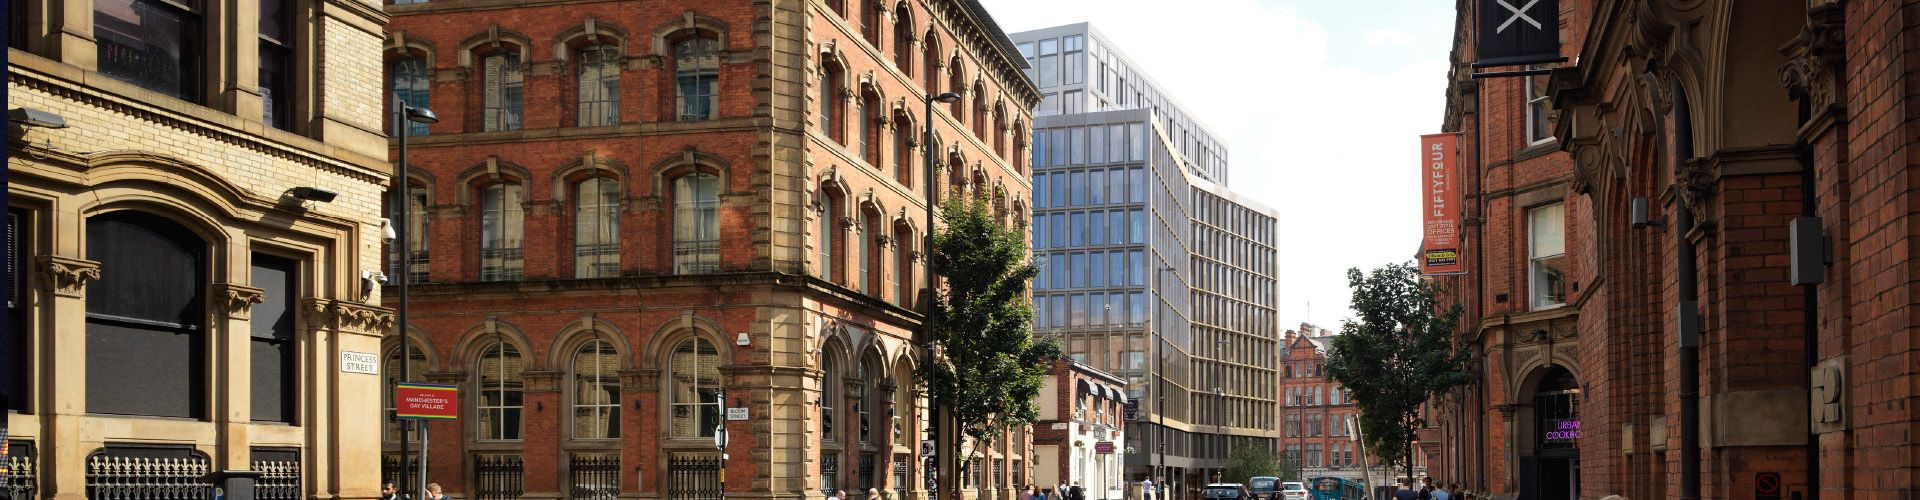 08.01.16_Urban&Civic recieves planning for key Manchester city centre development.jpg